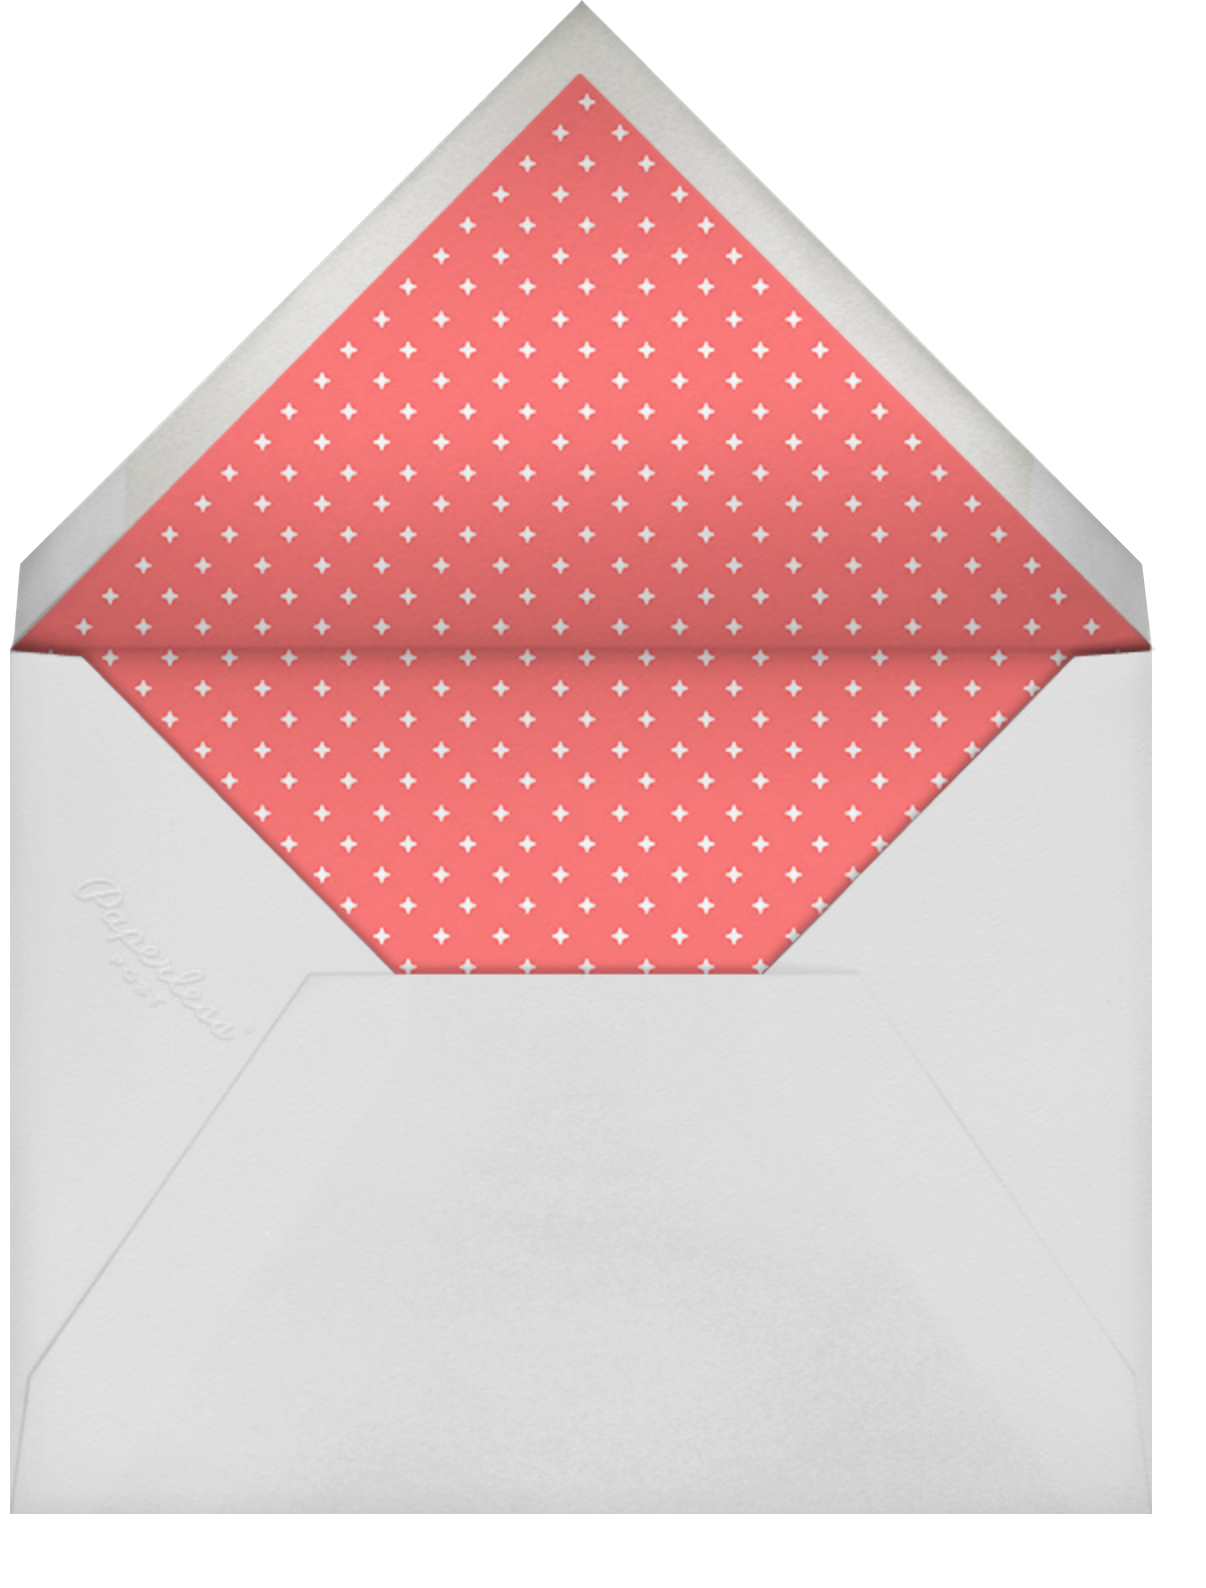 Ivory - Paperless Post - Wedding party requests - envelope back